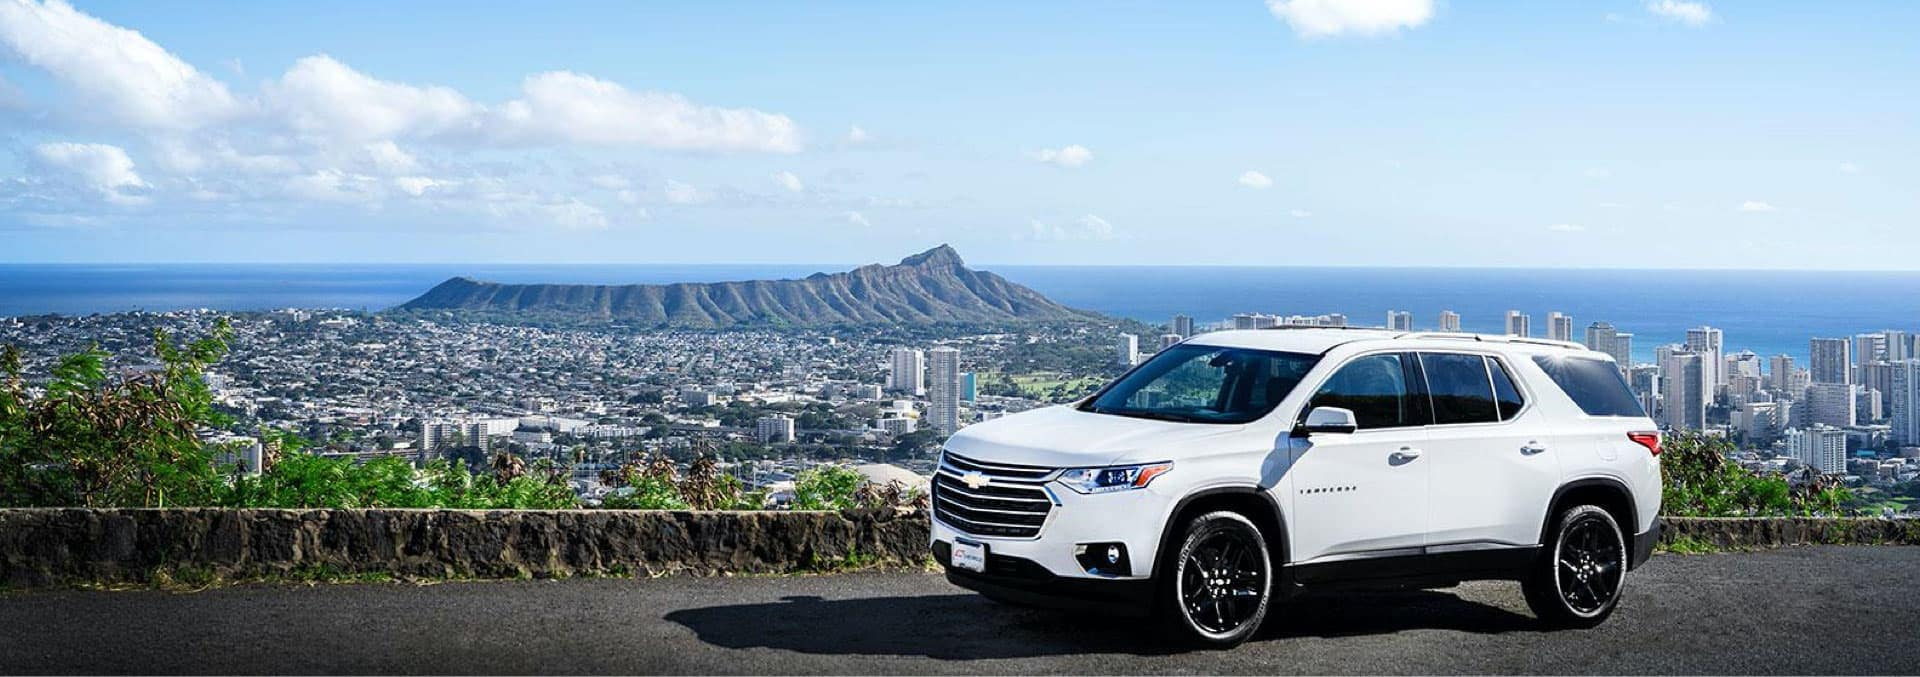 White Chevrolet SUV sitting on the top of a hill with a view